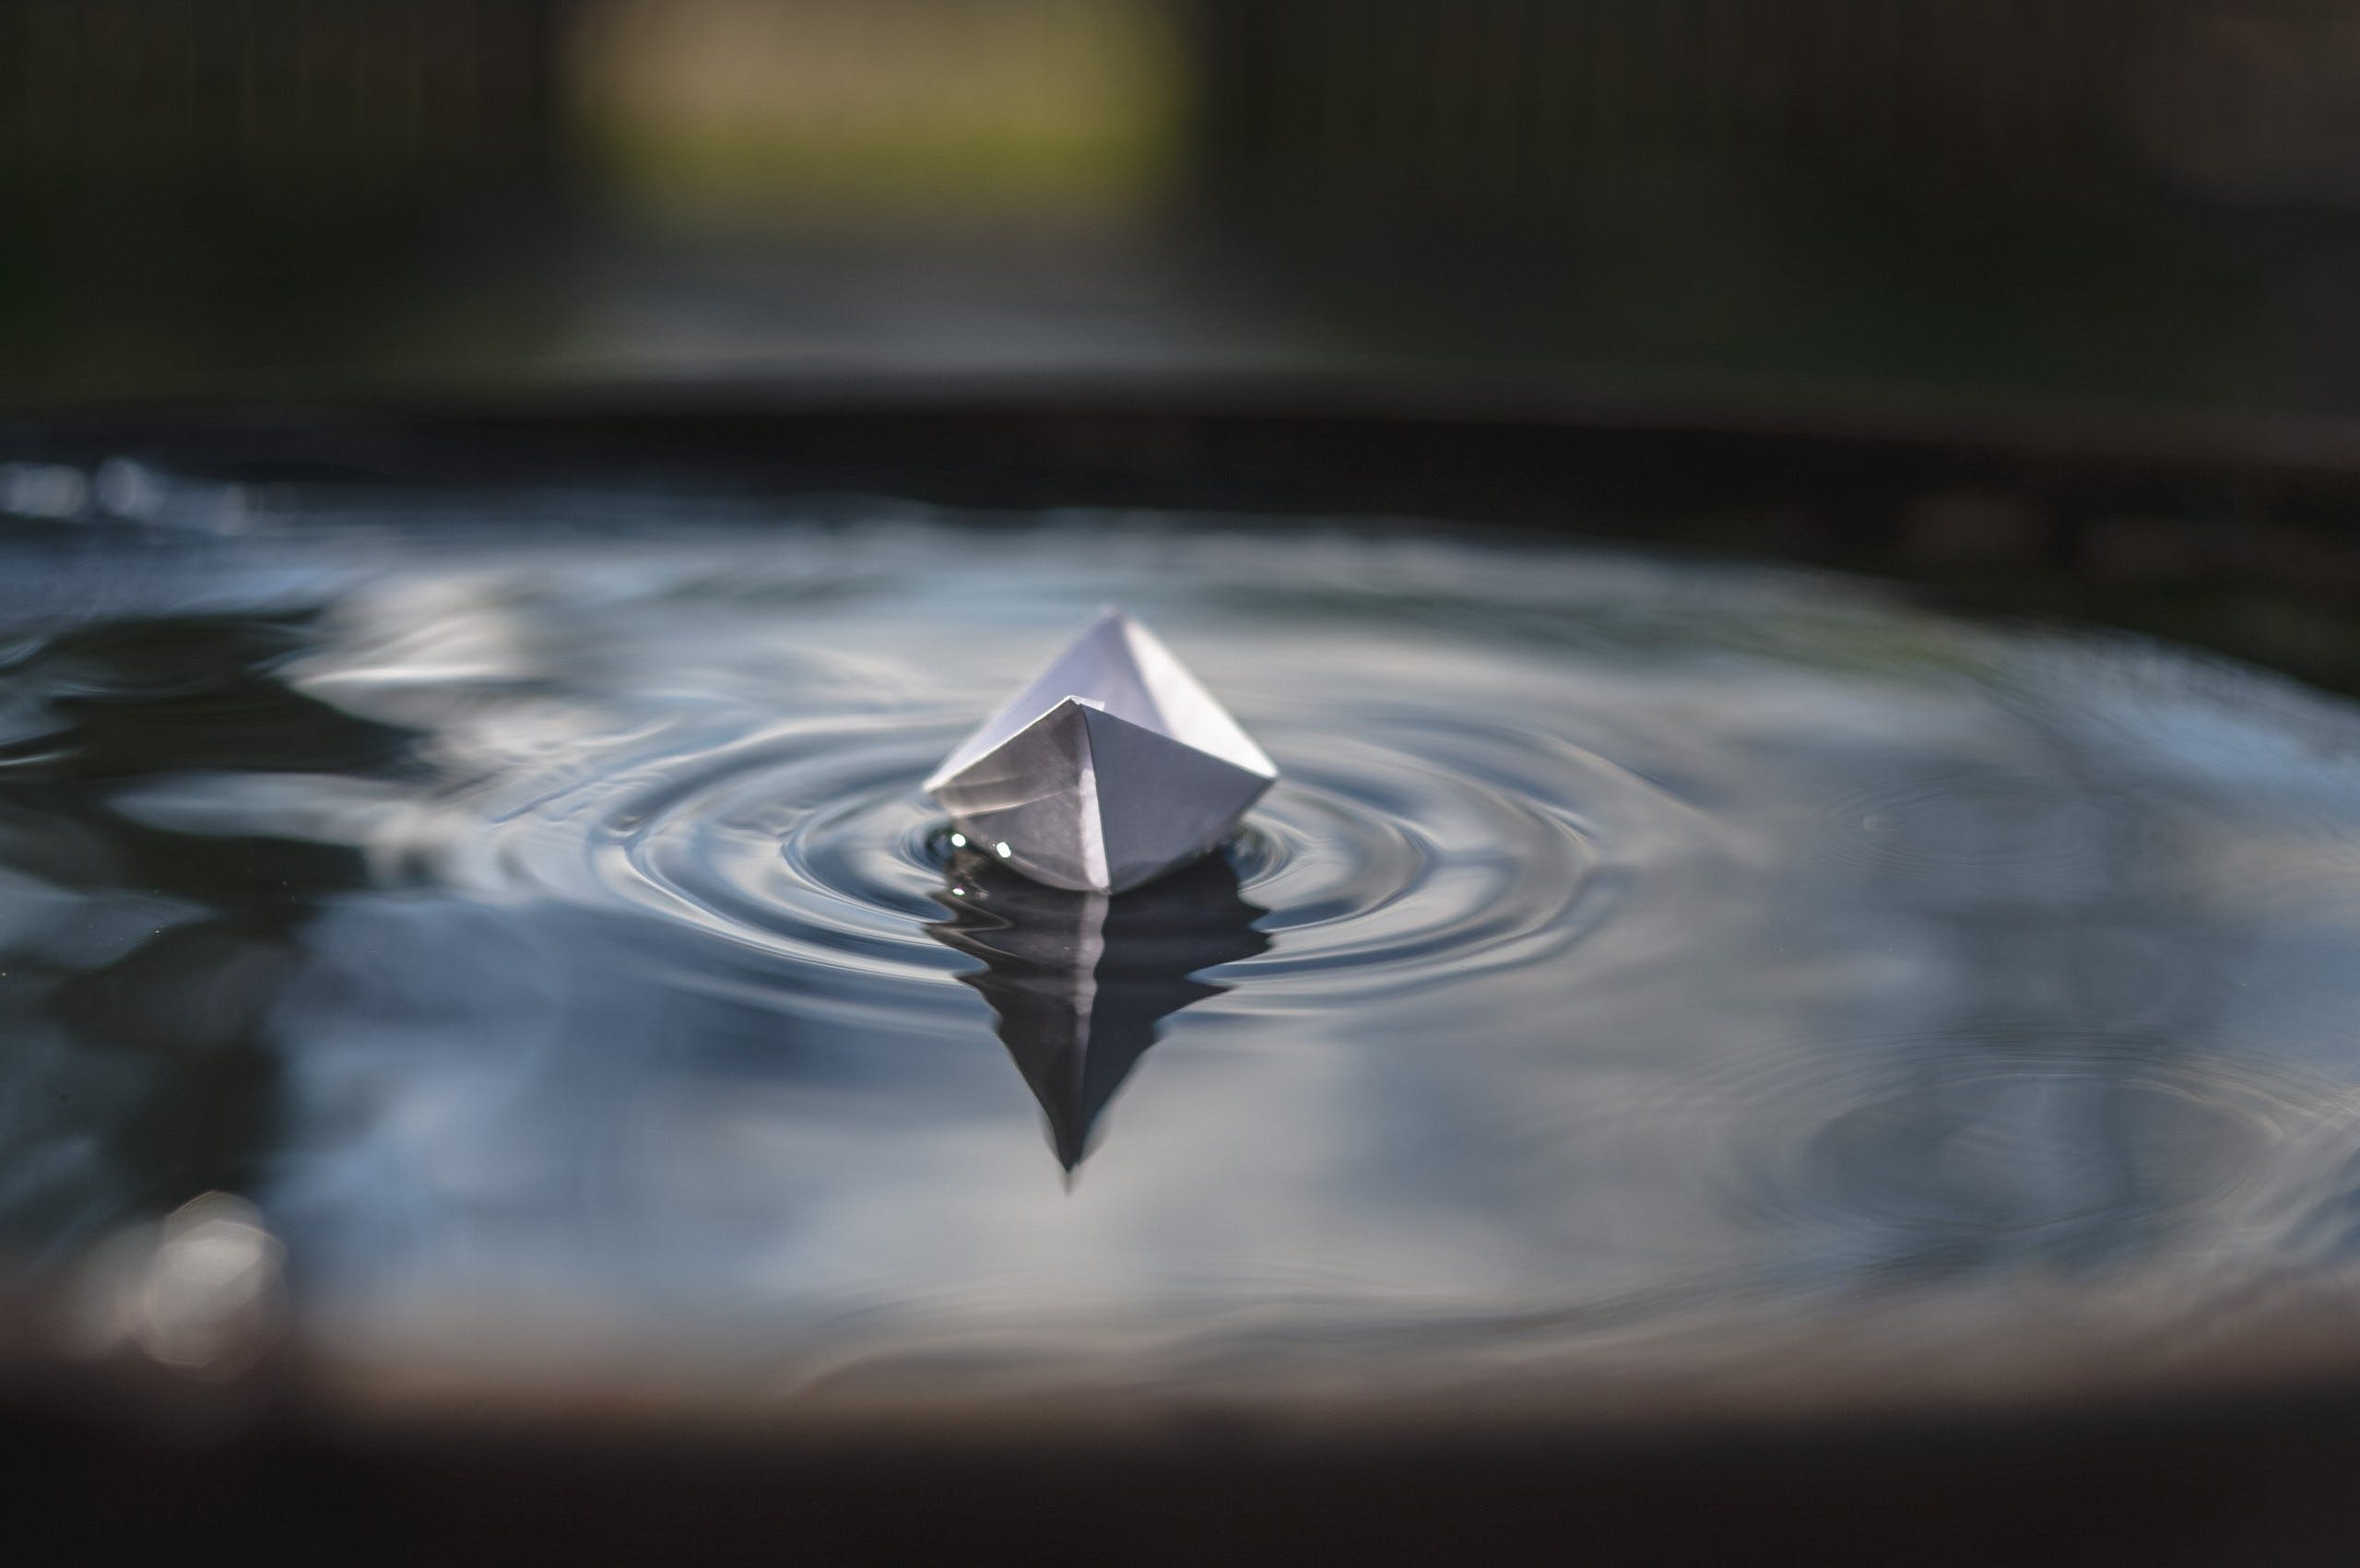 White Paper Boat on Floating on Water